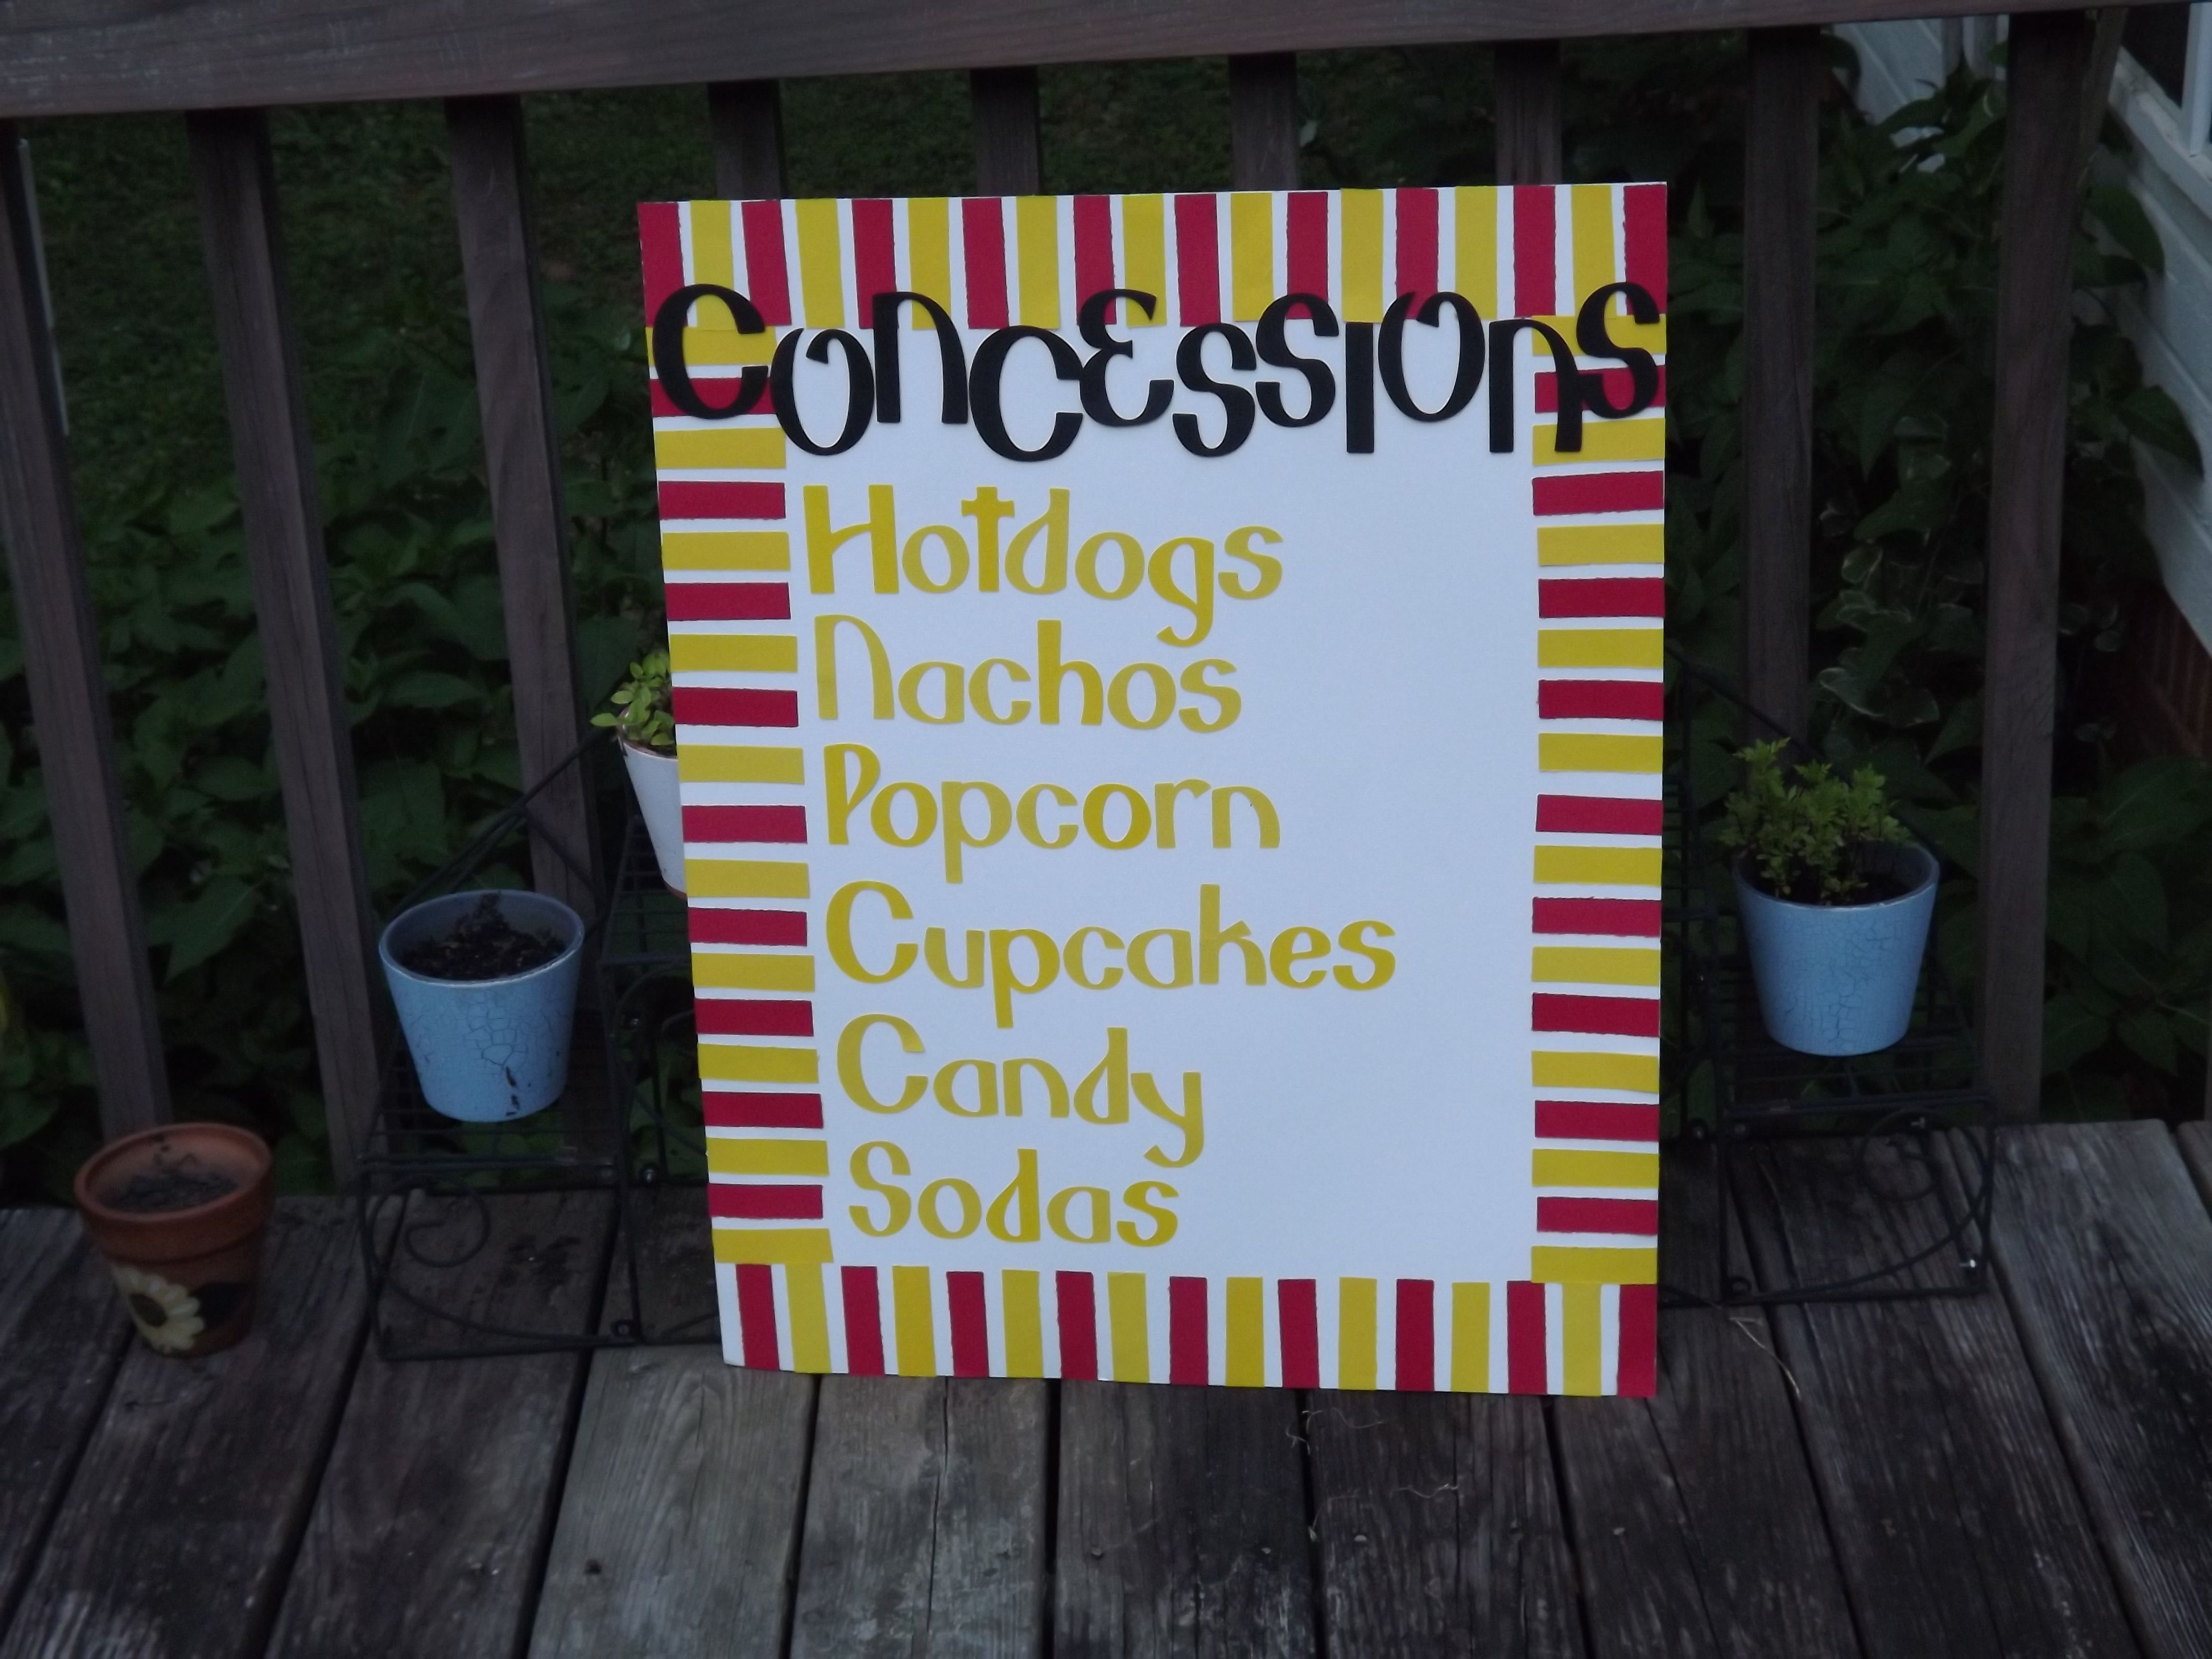 Movie Night Concession Stand Menu Board Concession Stand Menu Signs Concession Stand Menu Movie Night Party Decorations